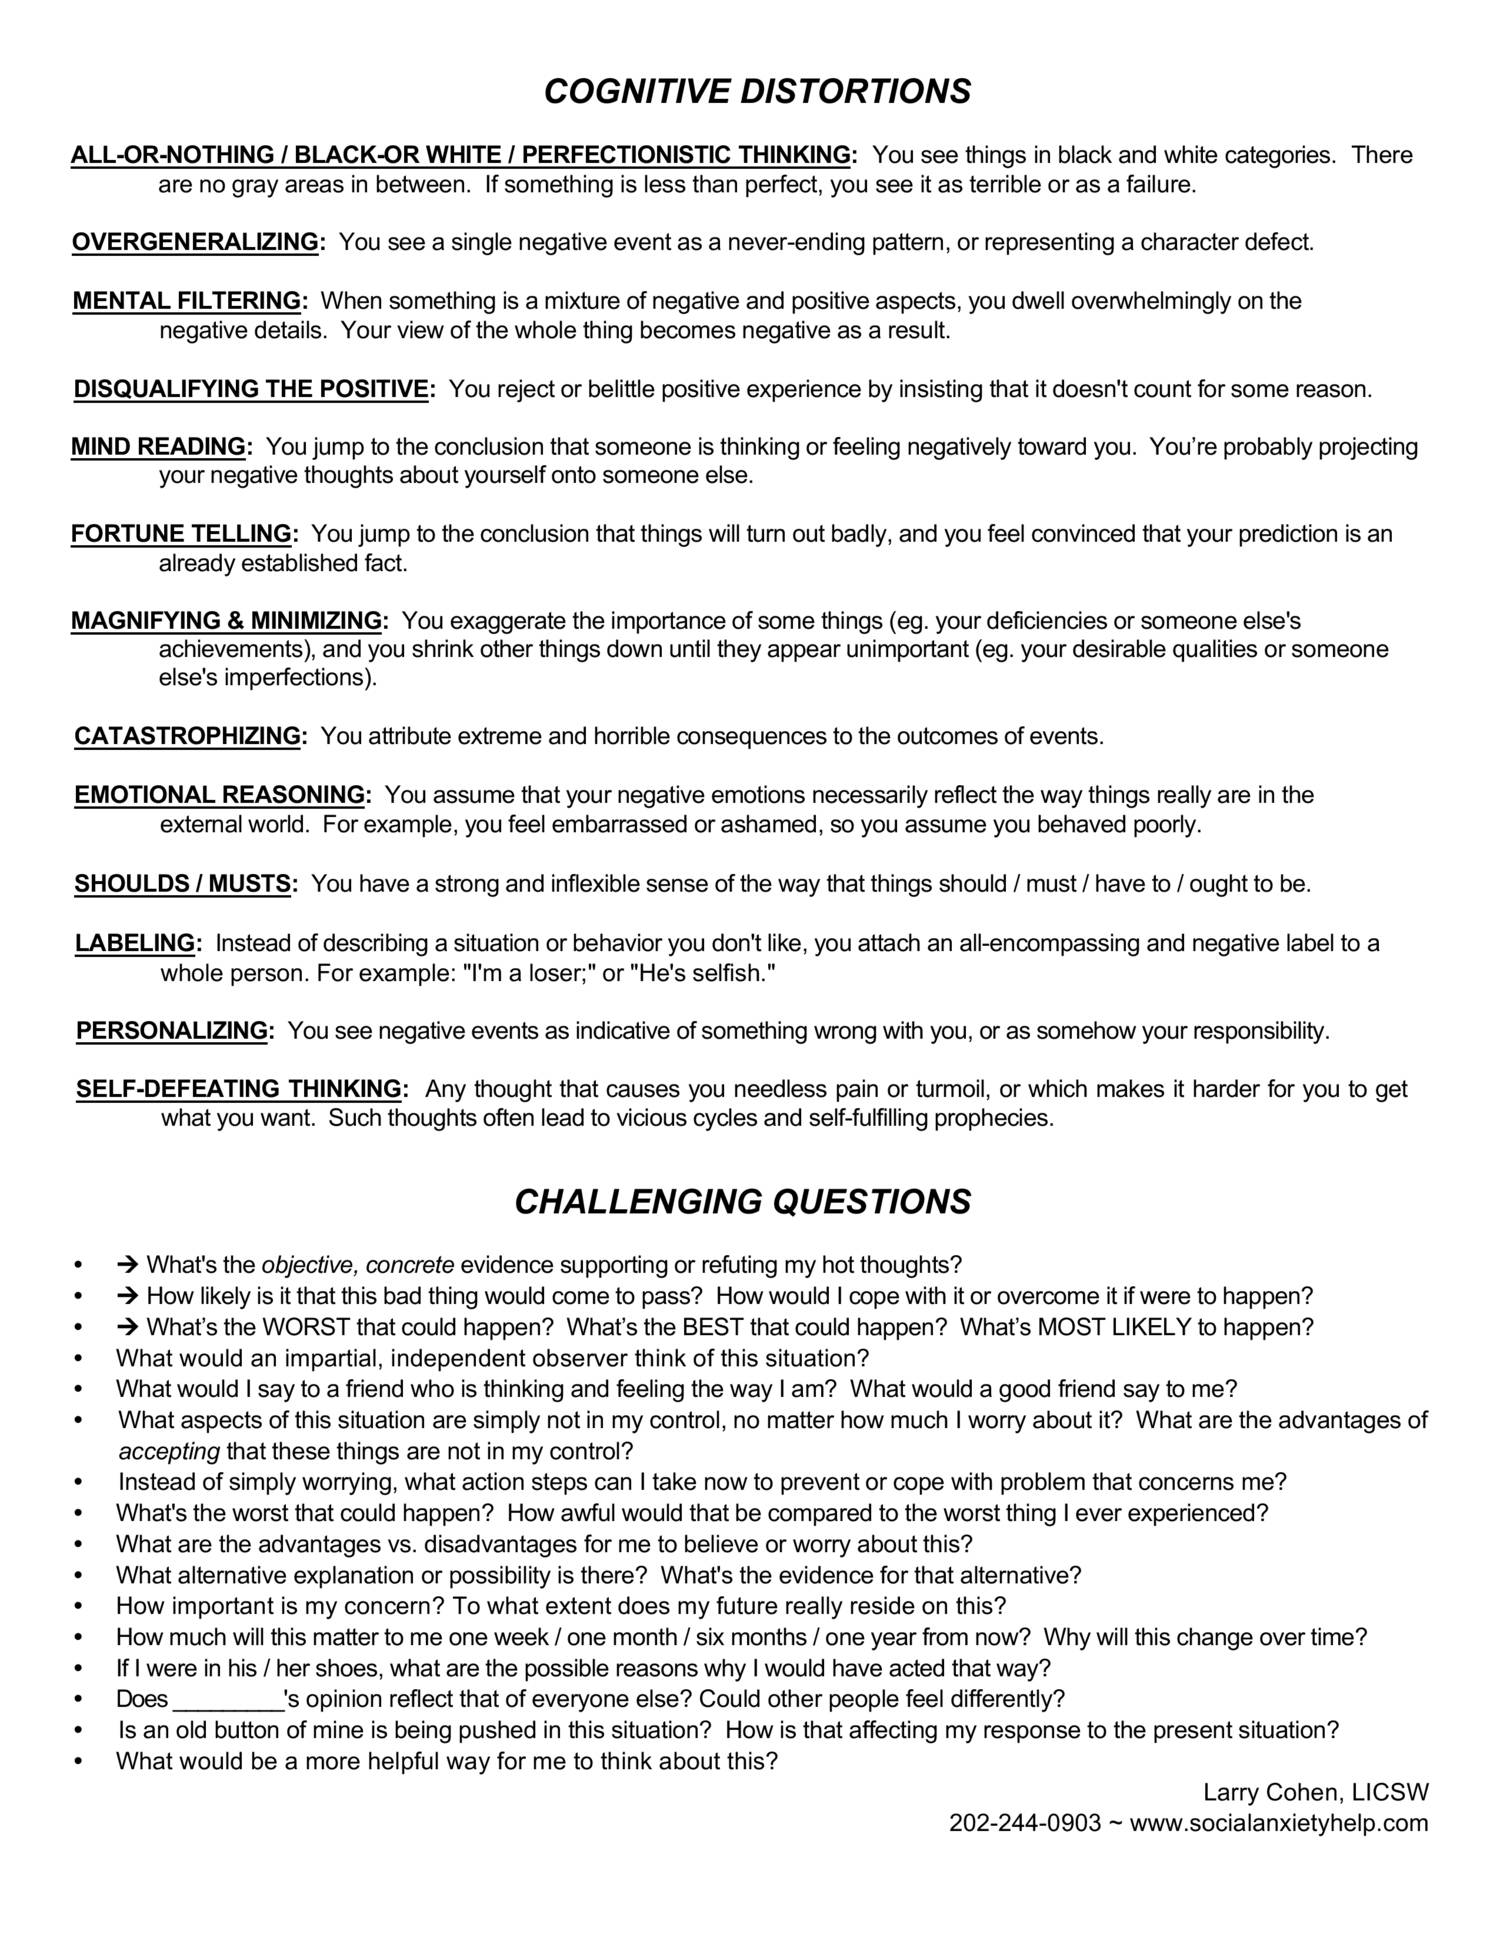 Cognitive Restructuring Worksheetspdf DocDroid – Character Defects Worksheet